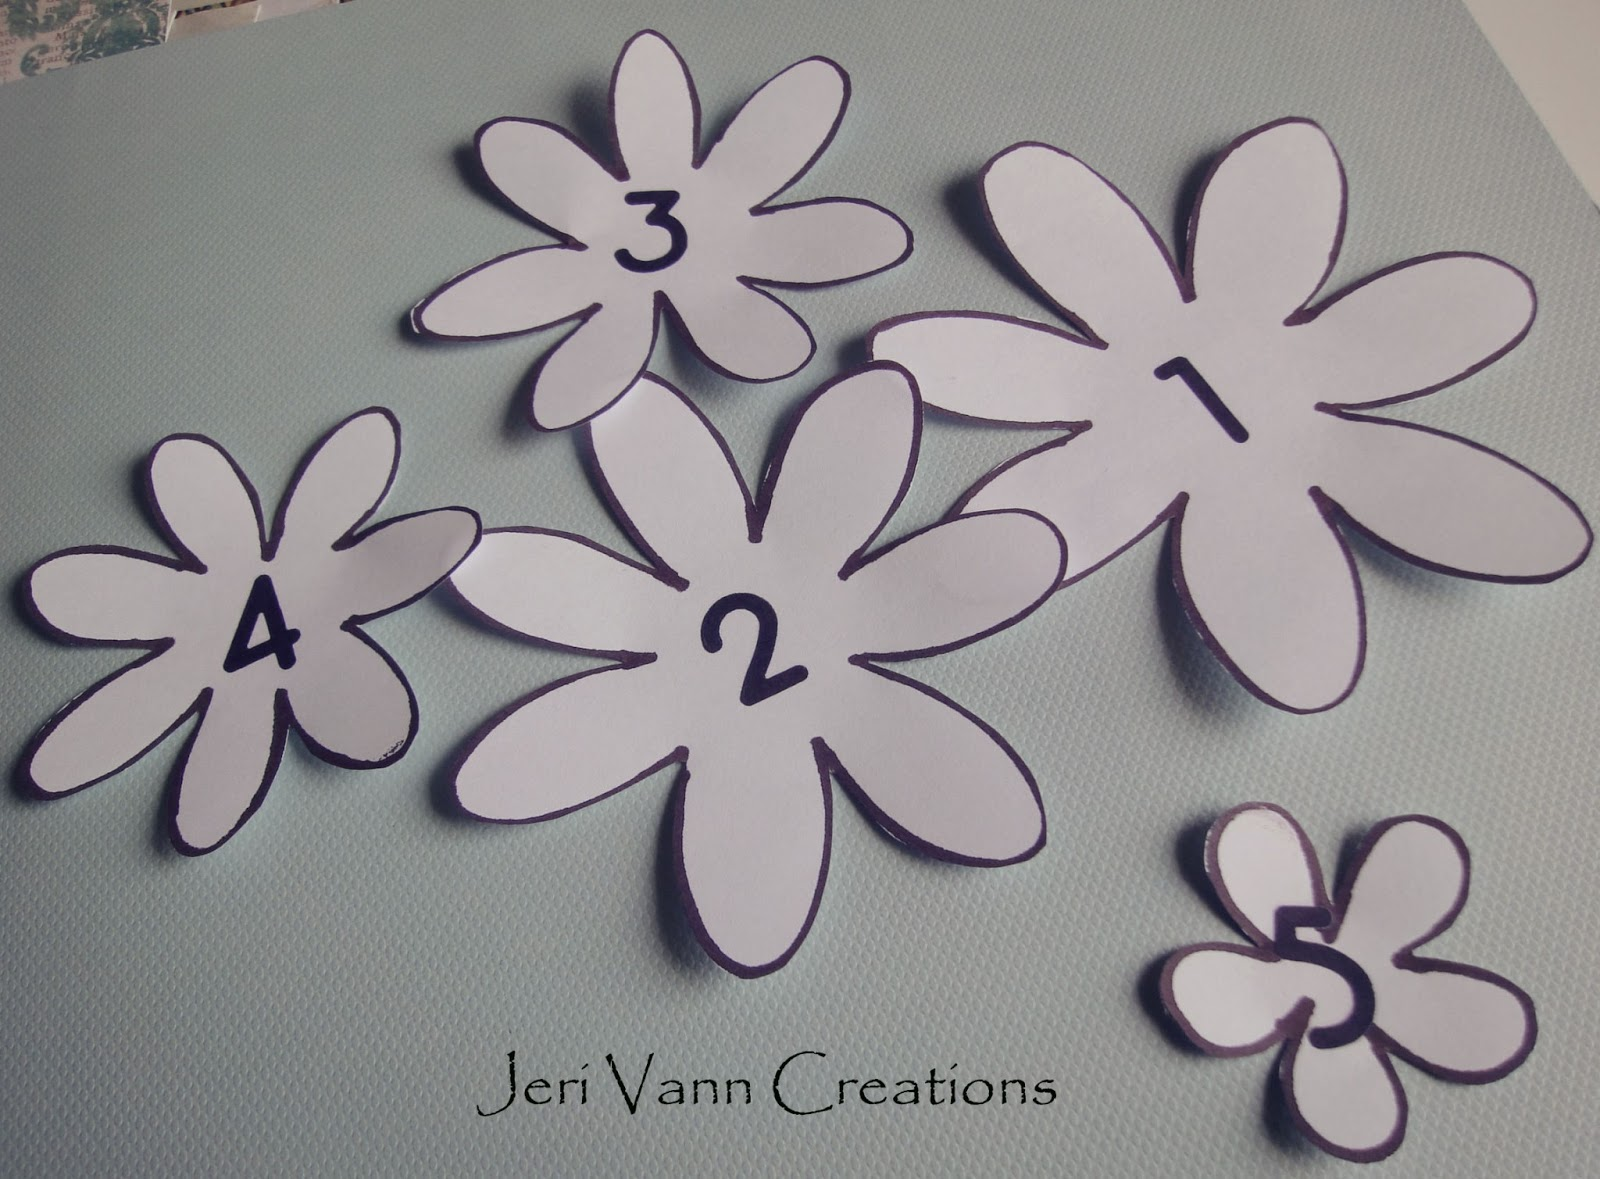 Fotobella lost and found flower tutorial for Paper cut out templates flowers